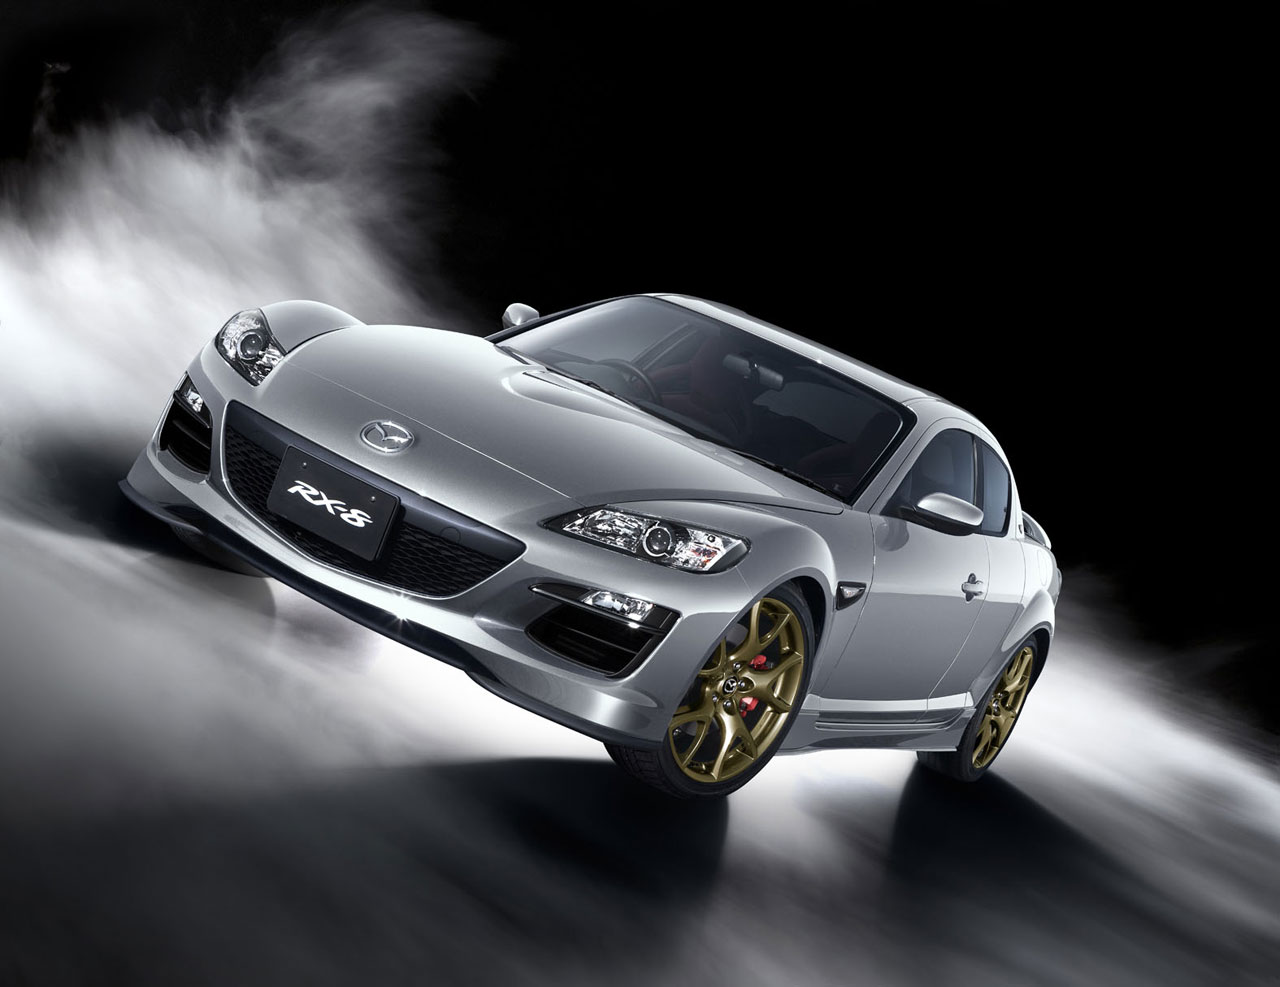 Black Book Car Values >> Mazda RX-8 Spirit R will be last special edition before production ends - Autoblog